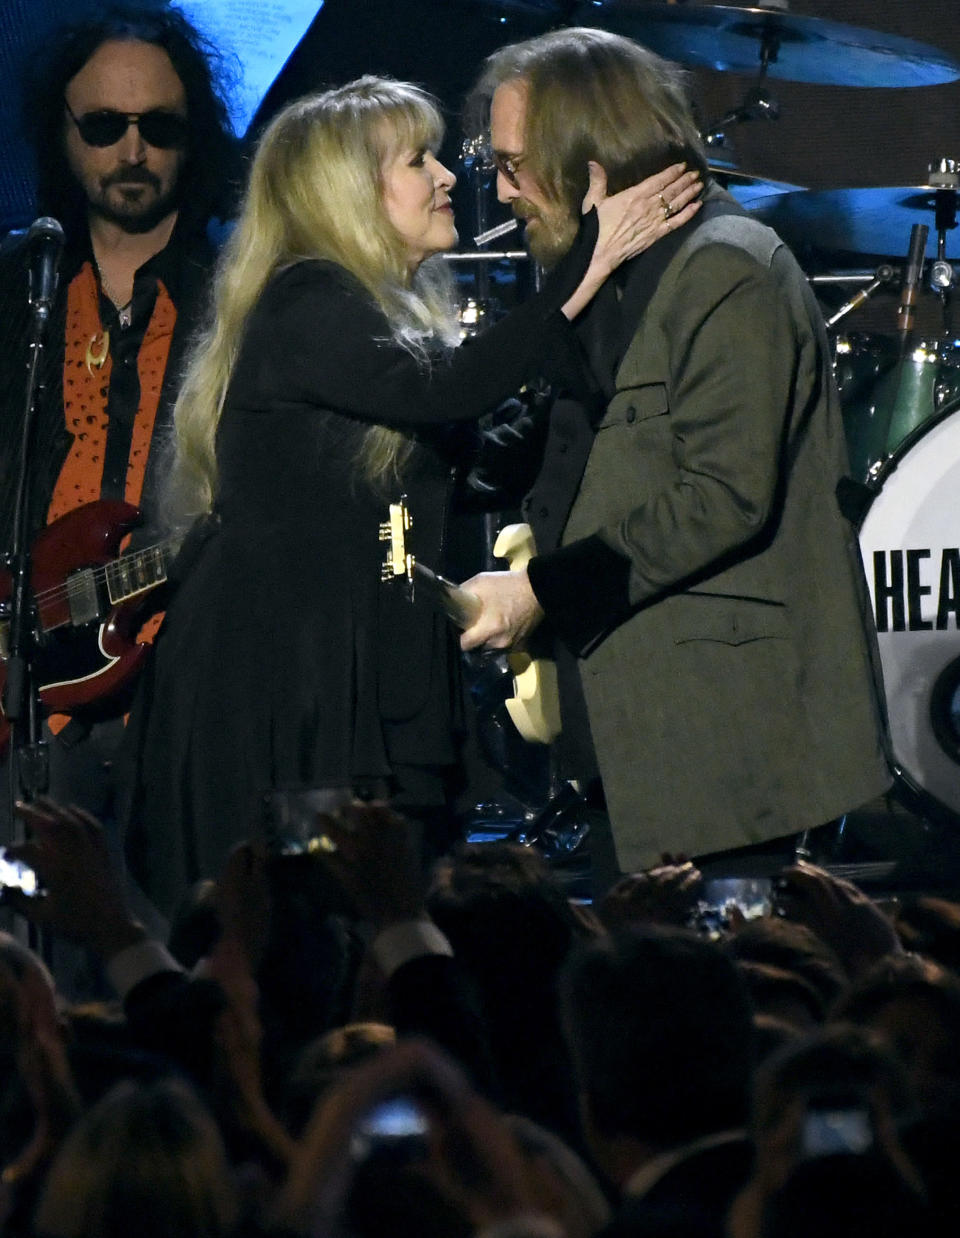 """FILE - Stevie Nicks, left, and honoree Tom Petty perform """"Stop Draggin' My Heart Around"""" at the MusiCares Person of the Year tribute in Los Angeles on Feb. 10, 2017. Just months before Petty died, the pair got together at the British Summer Time at Hyde Park in London to perform their 1981 hit """"Stop Draggin' My Heart Around."""" (Photo by Chris Pizzello/Invision/AP, File)"""